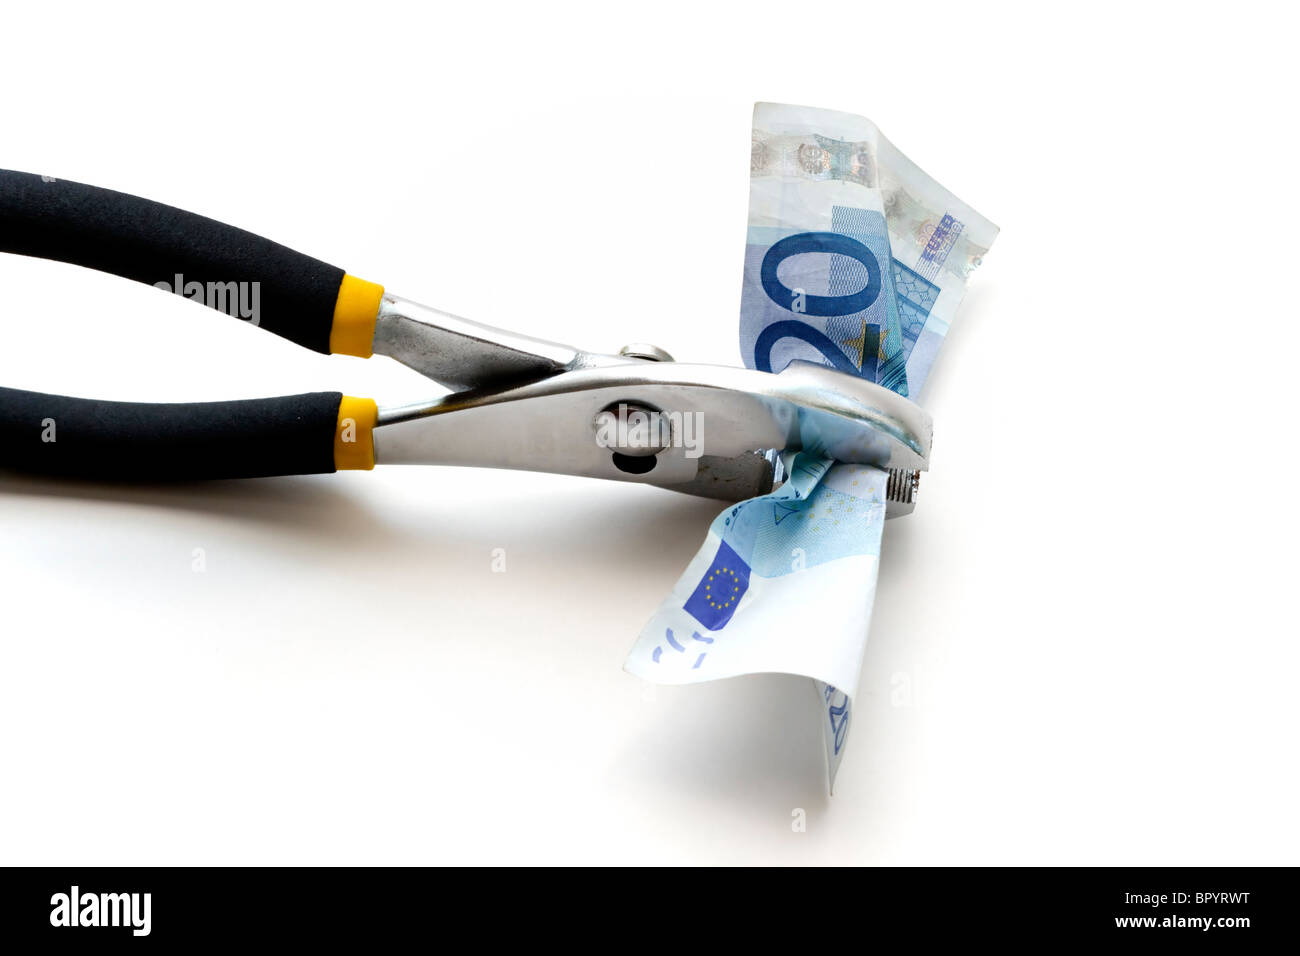 Euro being squeezed Stock Photo